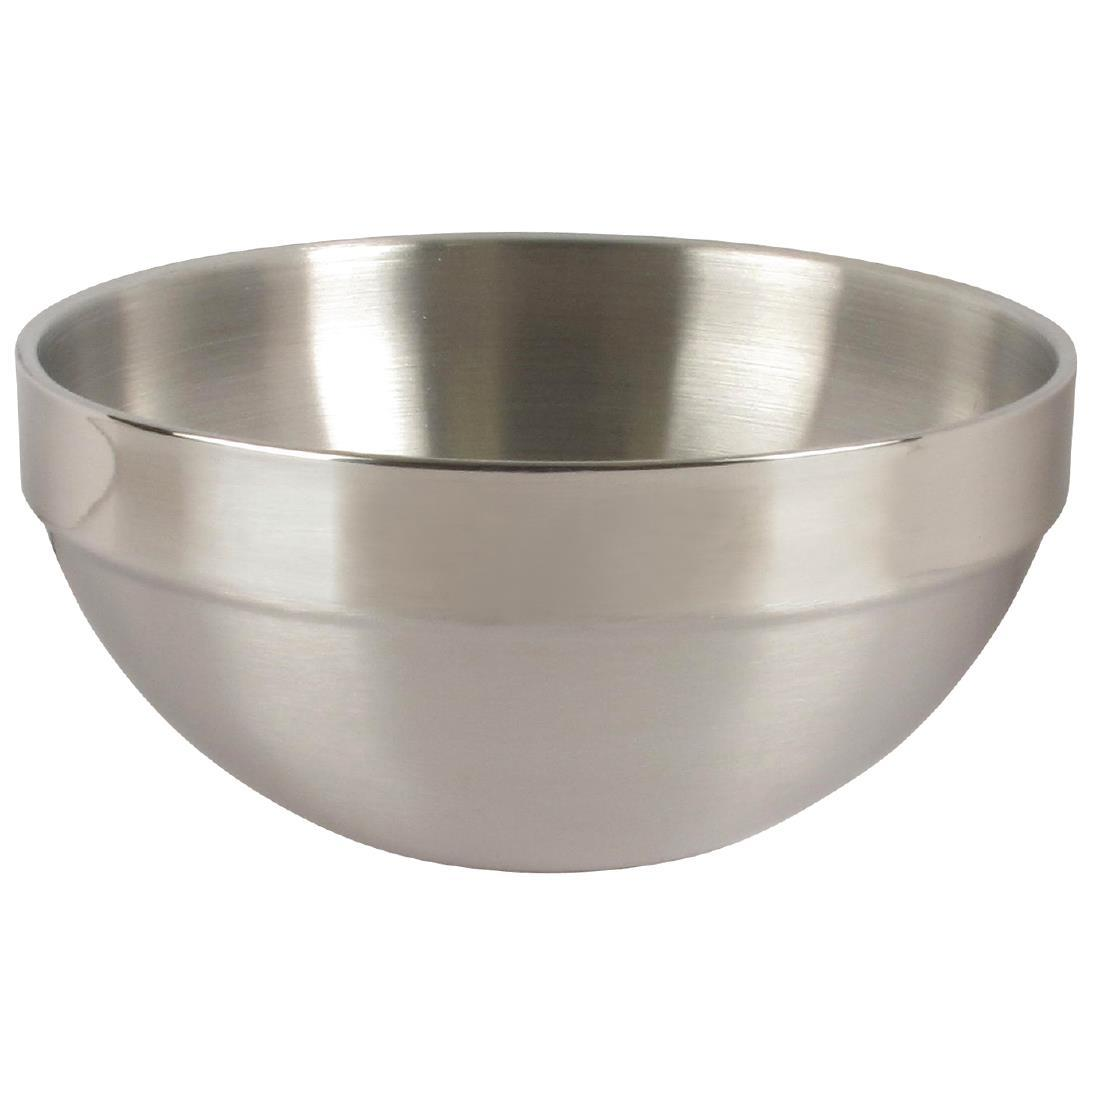 GC935 - APS Frames 0.5Ltr Stainless Steel Bowl - Each - GC935